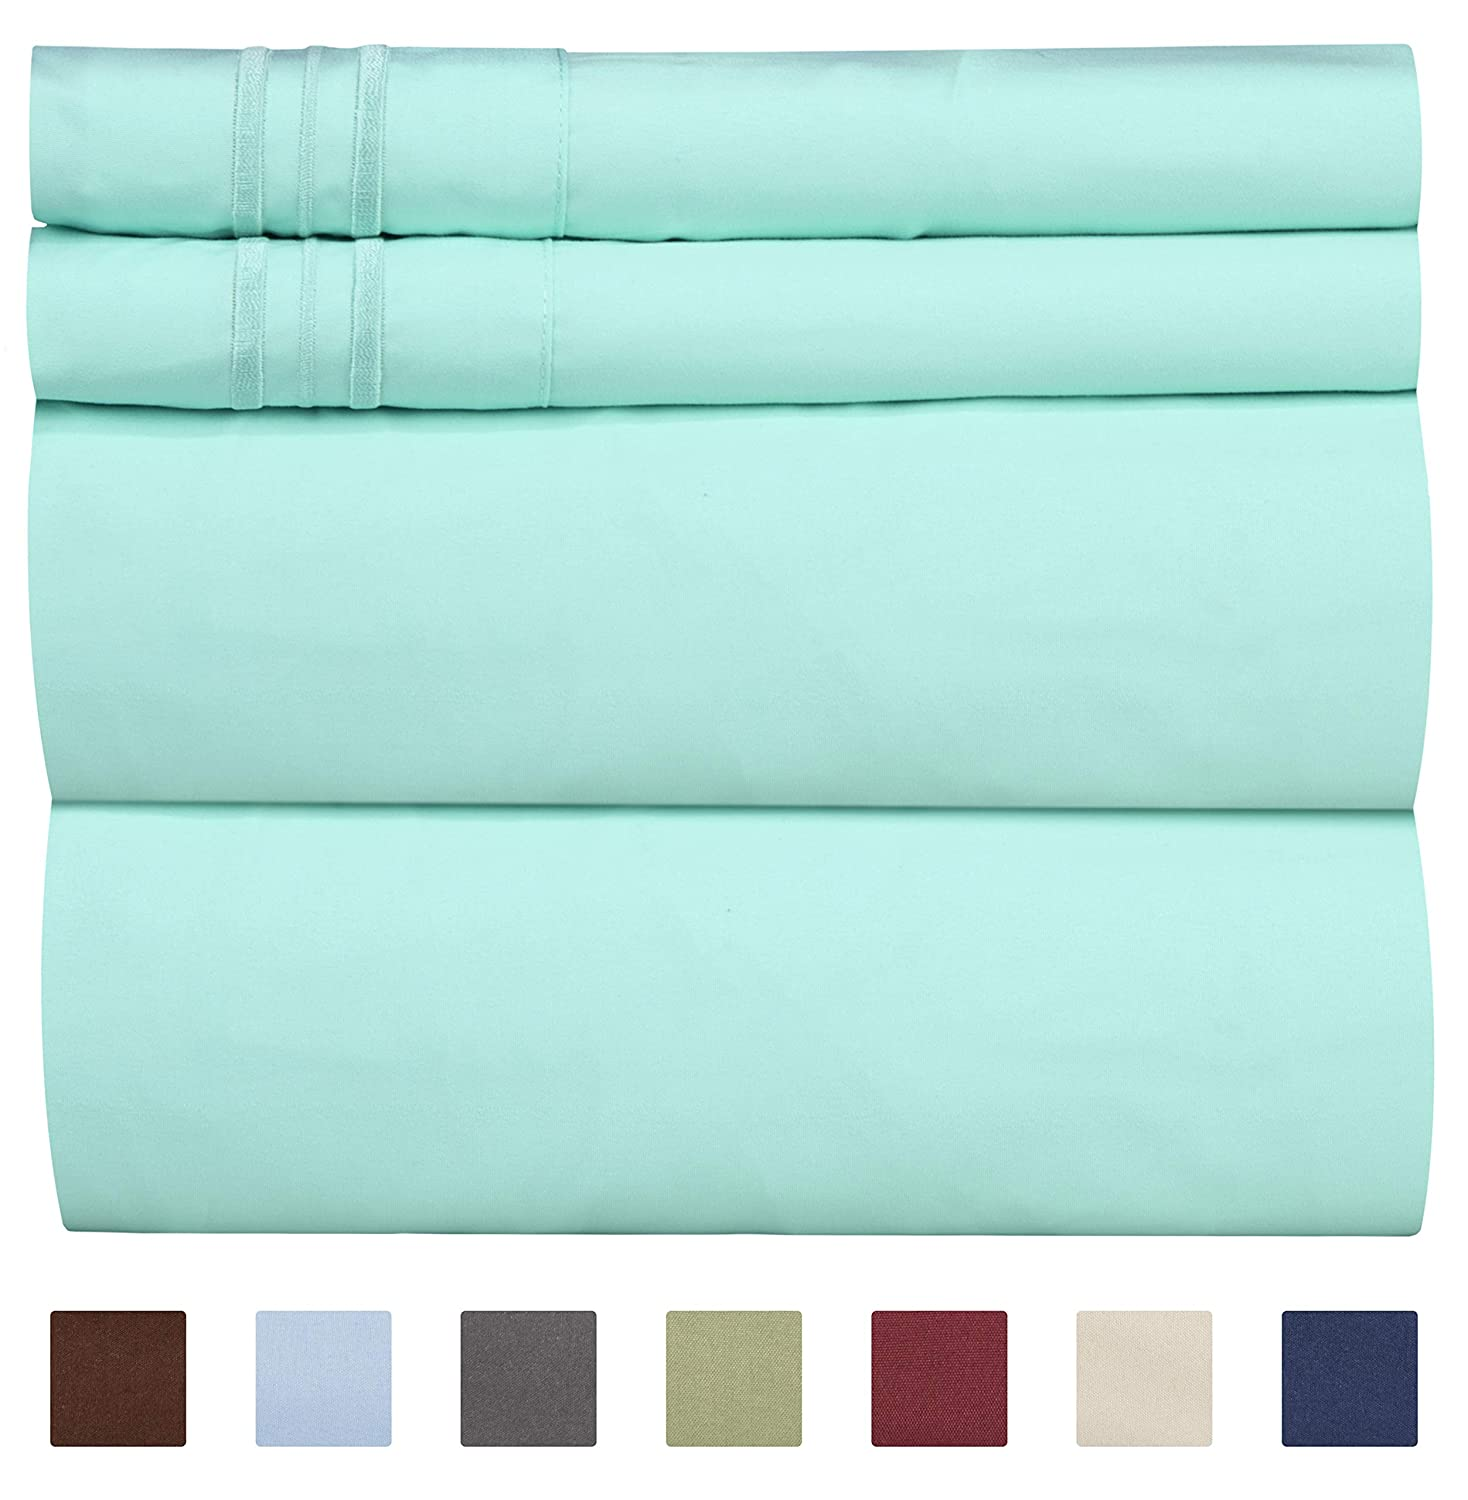 Queen Size Sheet Set - 4 Piece Set - Hotel Luxury Bed Sheets - Extra Soft - Deep Pockets - Easy Fit - Breathable & Cooling - Wrinkle Free - Comfy – Spa Blue Bed Sheets - Queens Sheets – 4 PC